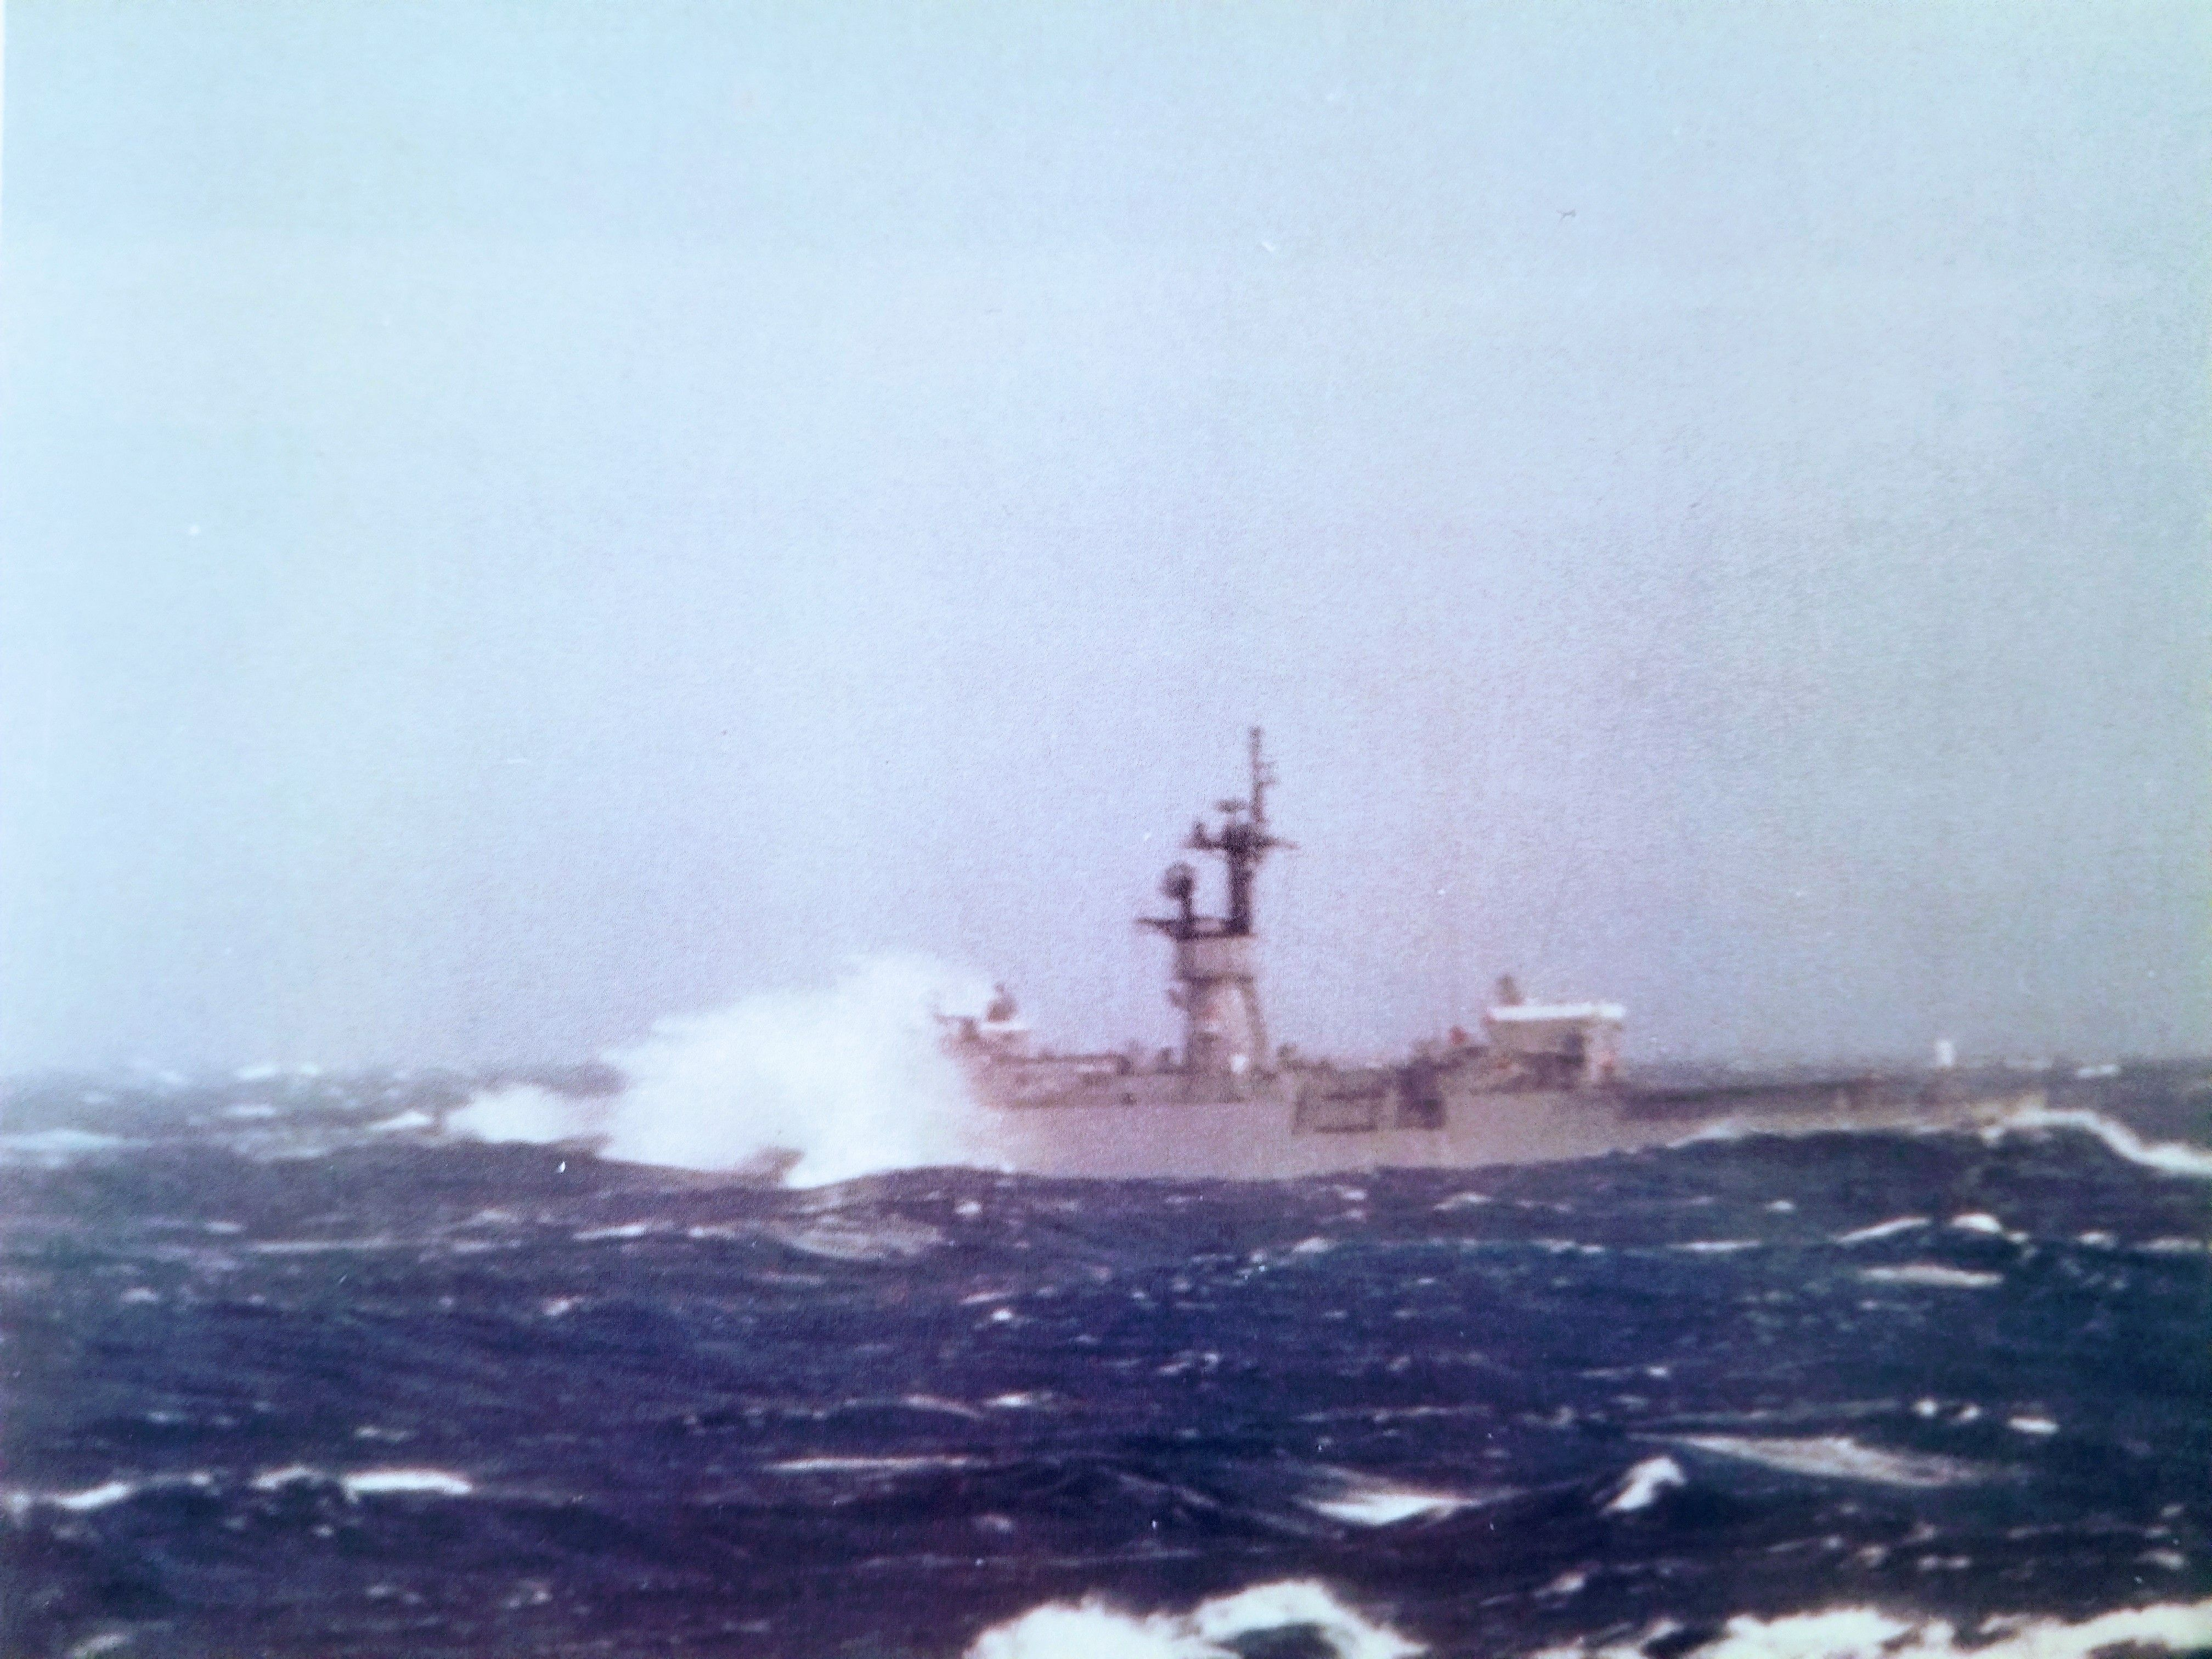 Uss Kirk Ff 1087 South China Sea 1986 Or 1987 United States Navy Ships Navy Day Cold War Military